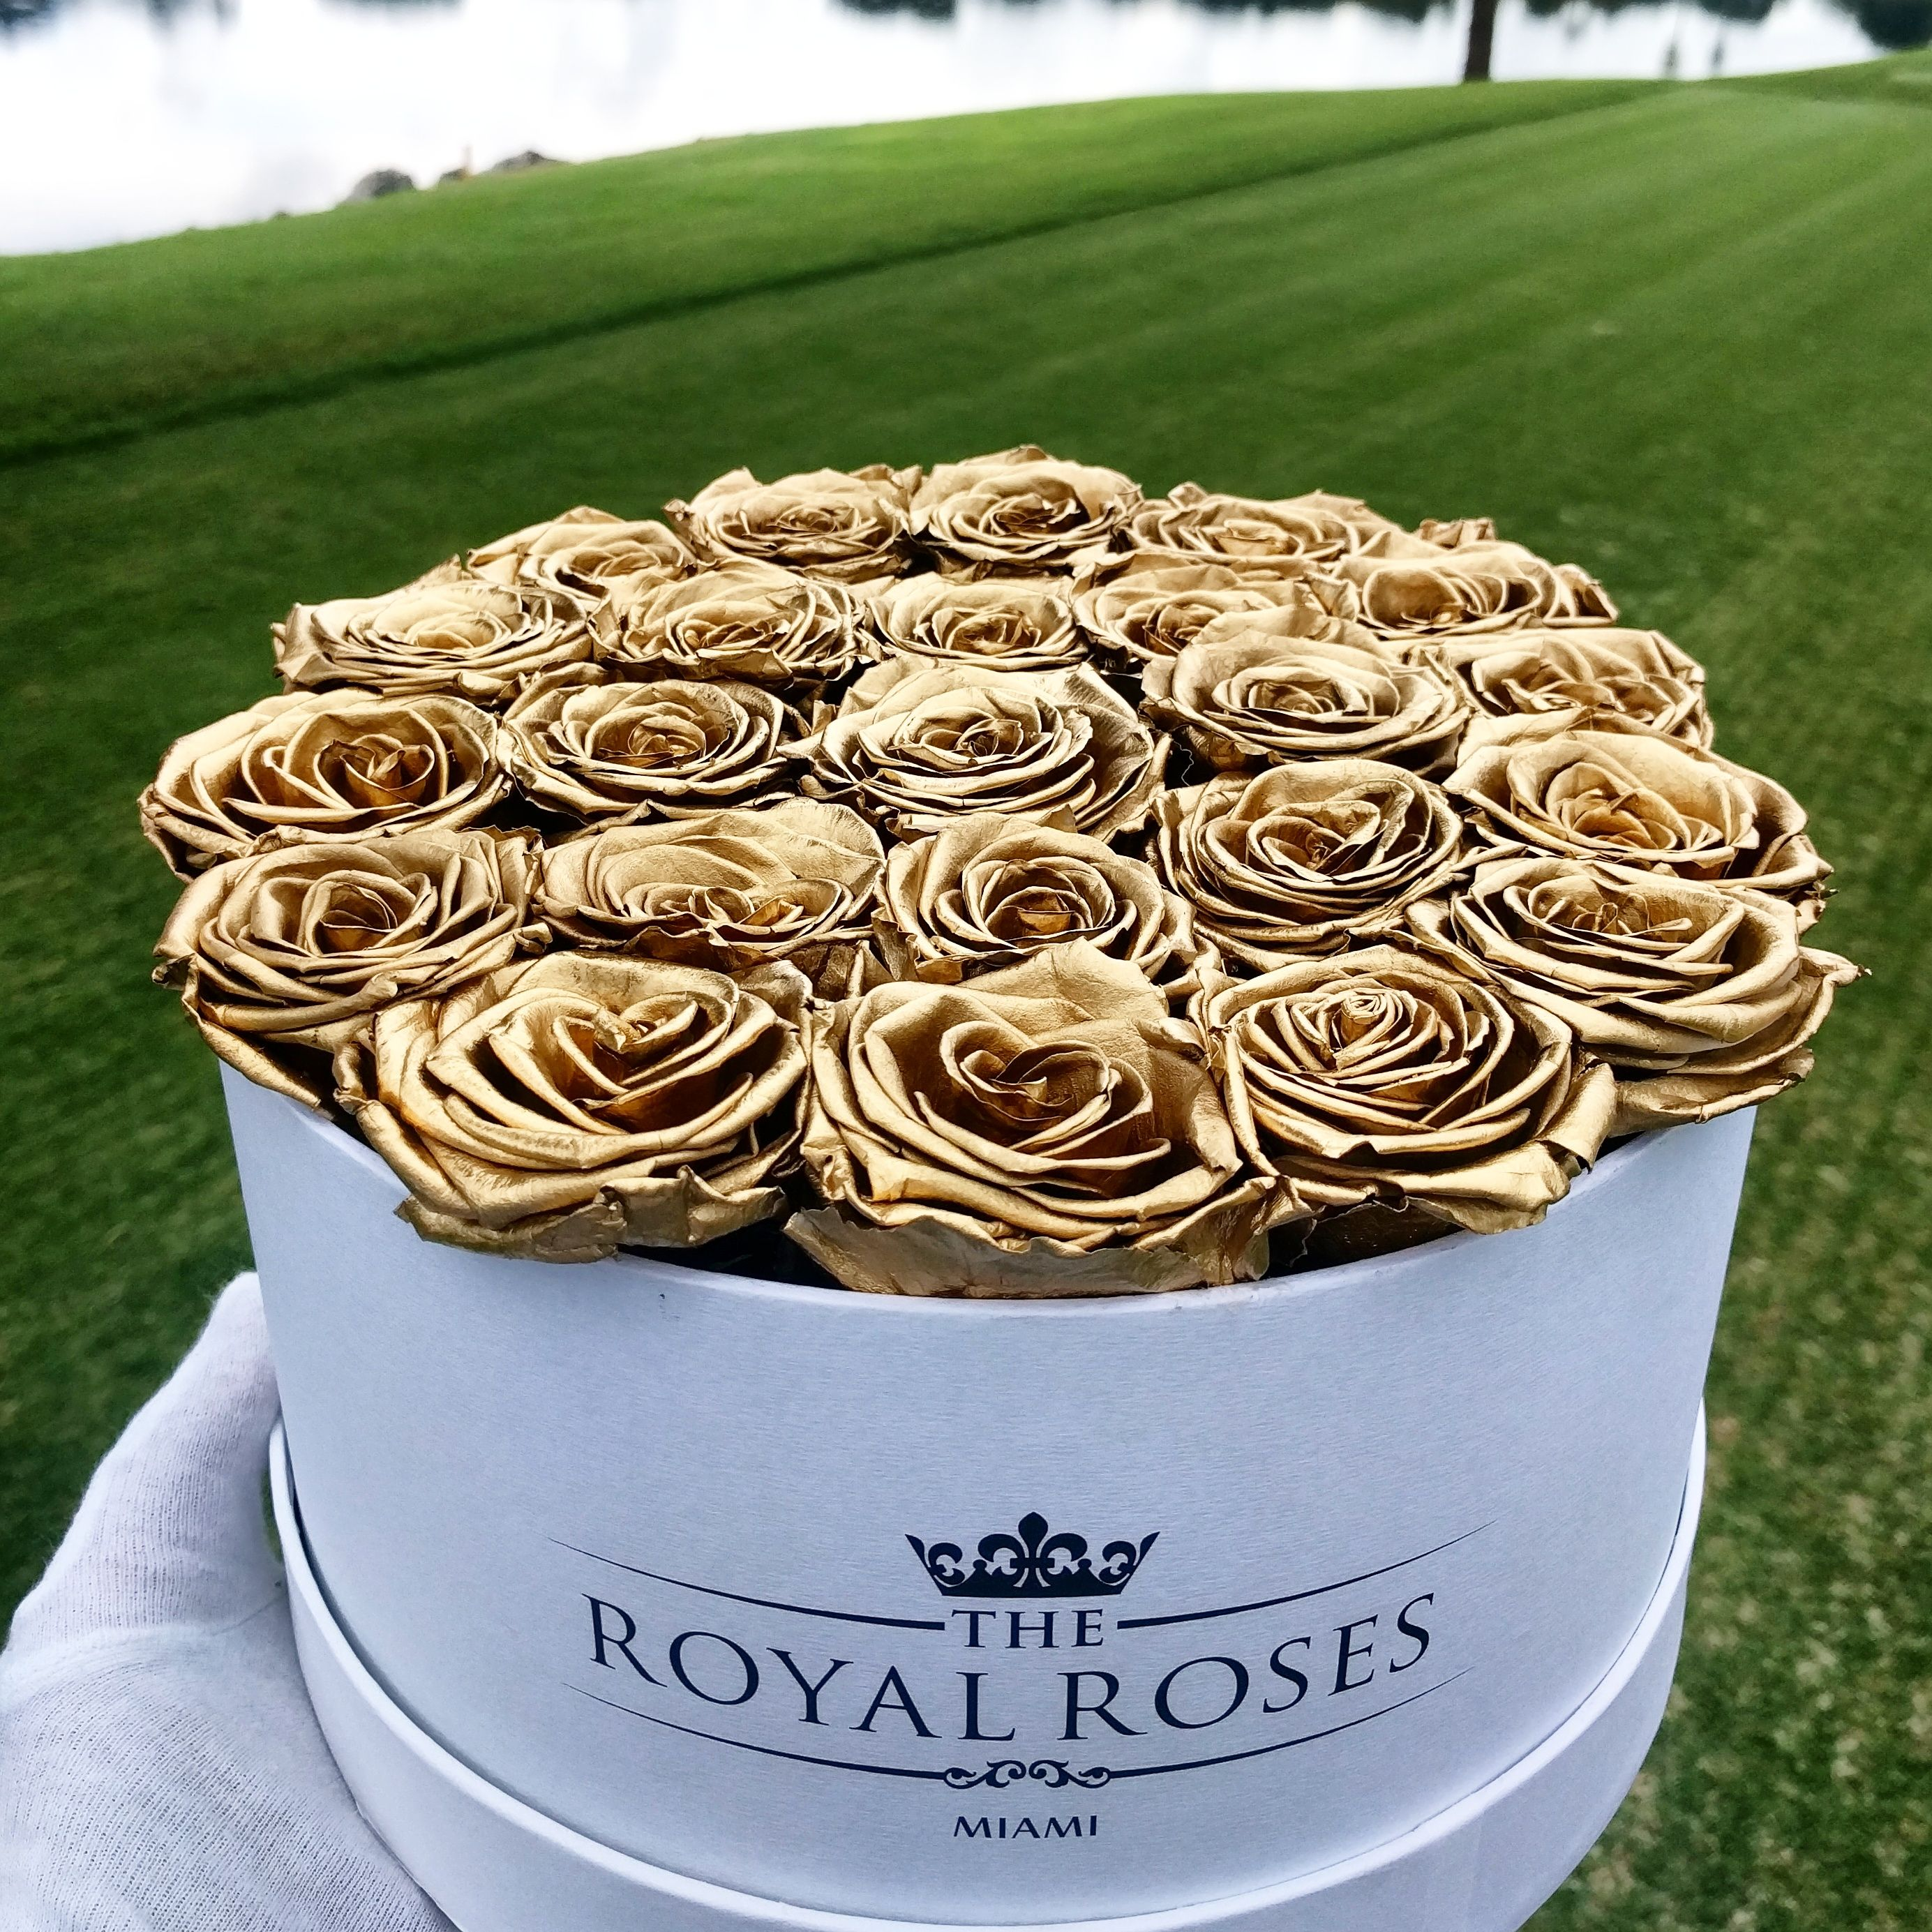 Luxury Preserved Roses That Last Years The Royal Roses In Box Roses Luxury Luxury Flowers Rose